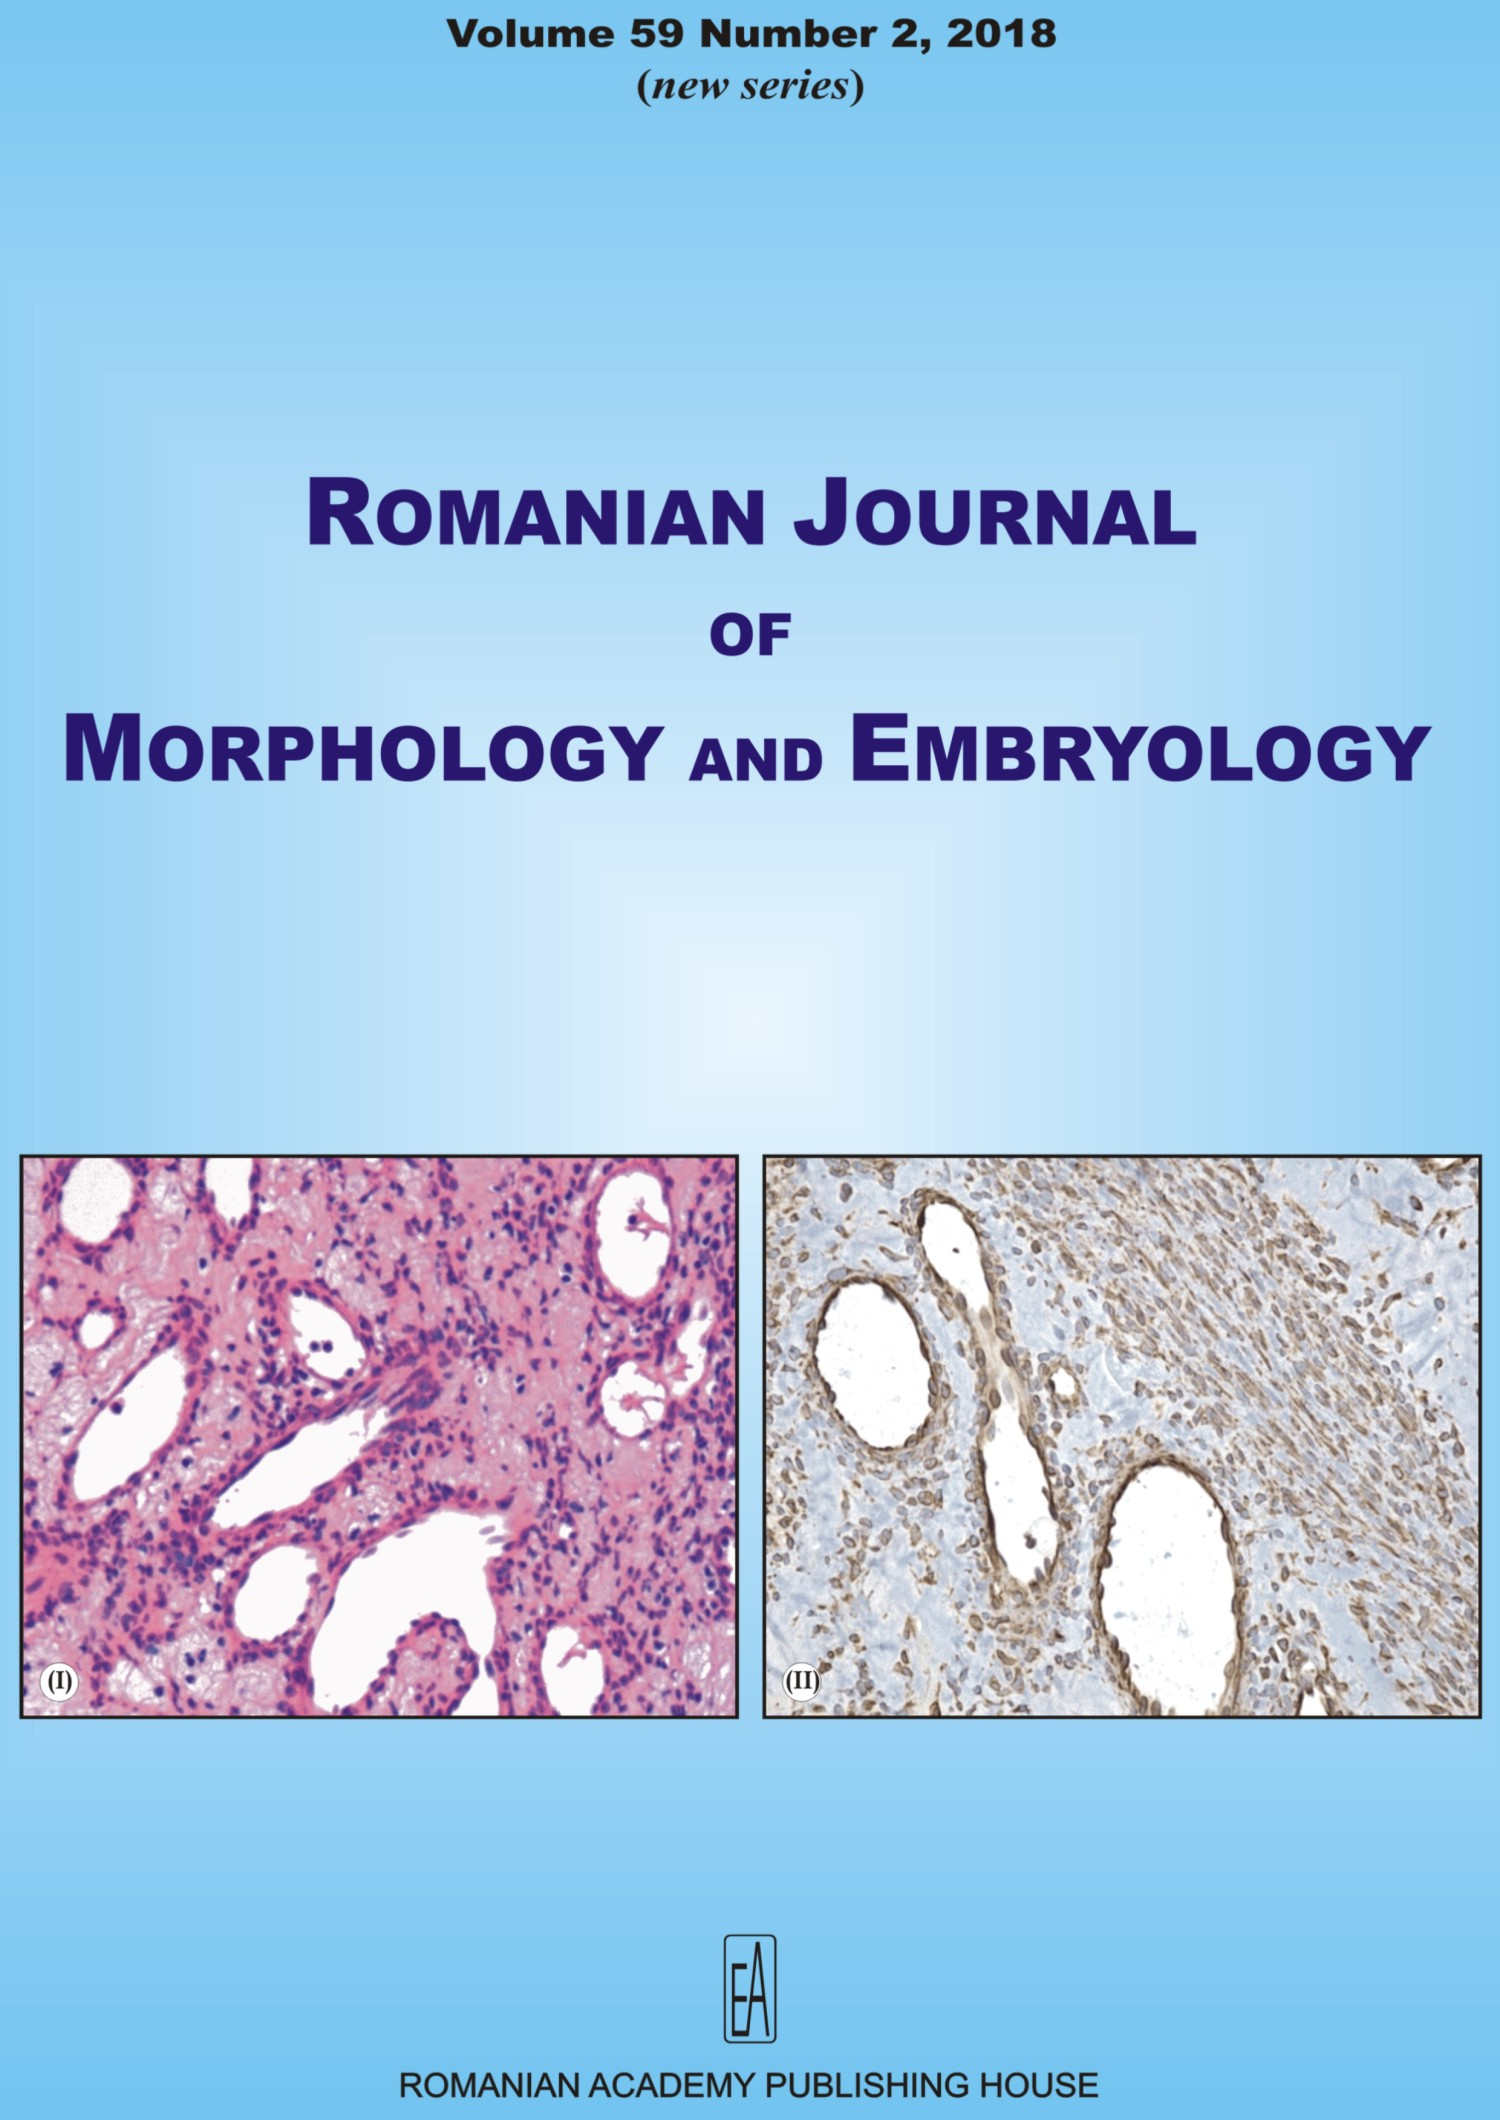 Romanian Journal of Morphology and Embryology, vol. 59 no. 2, 2018